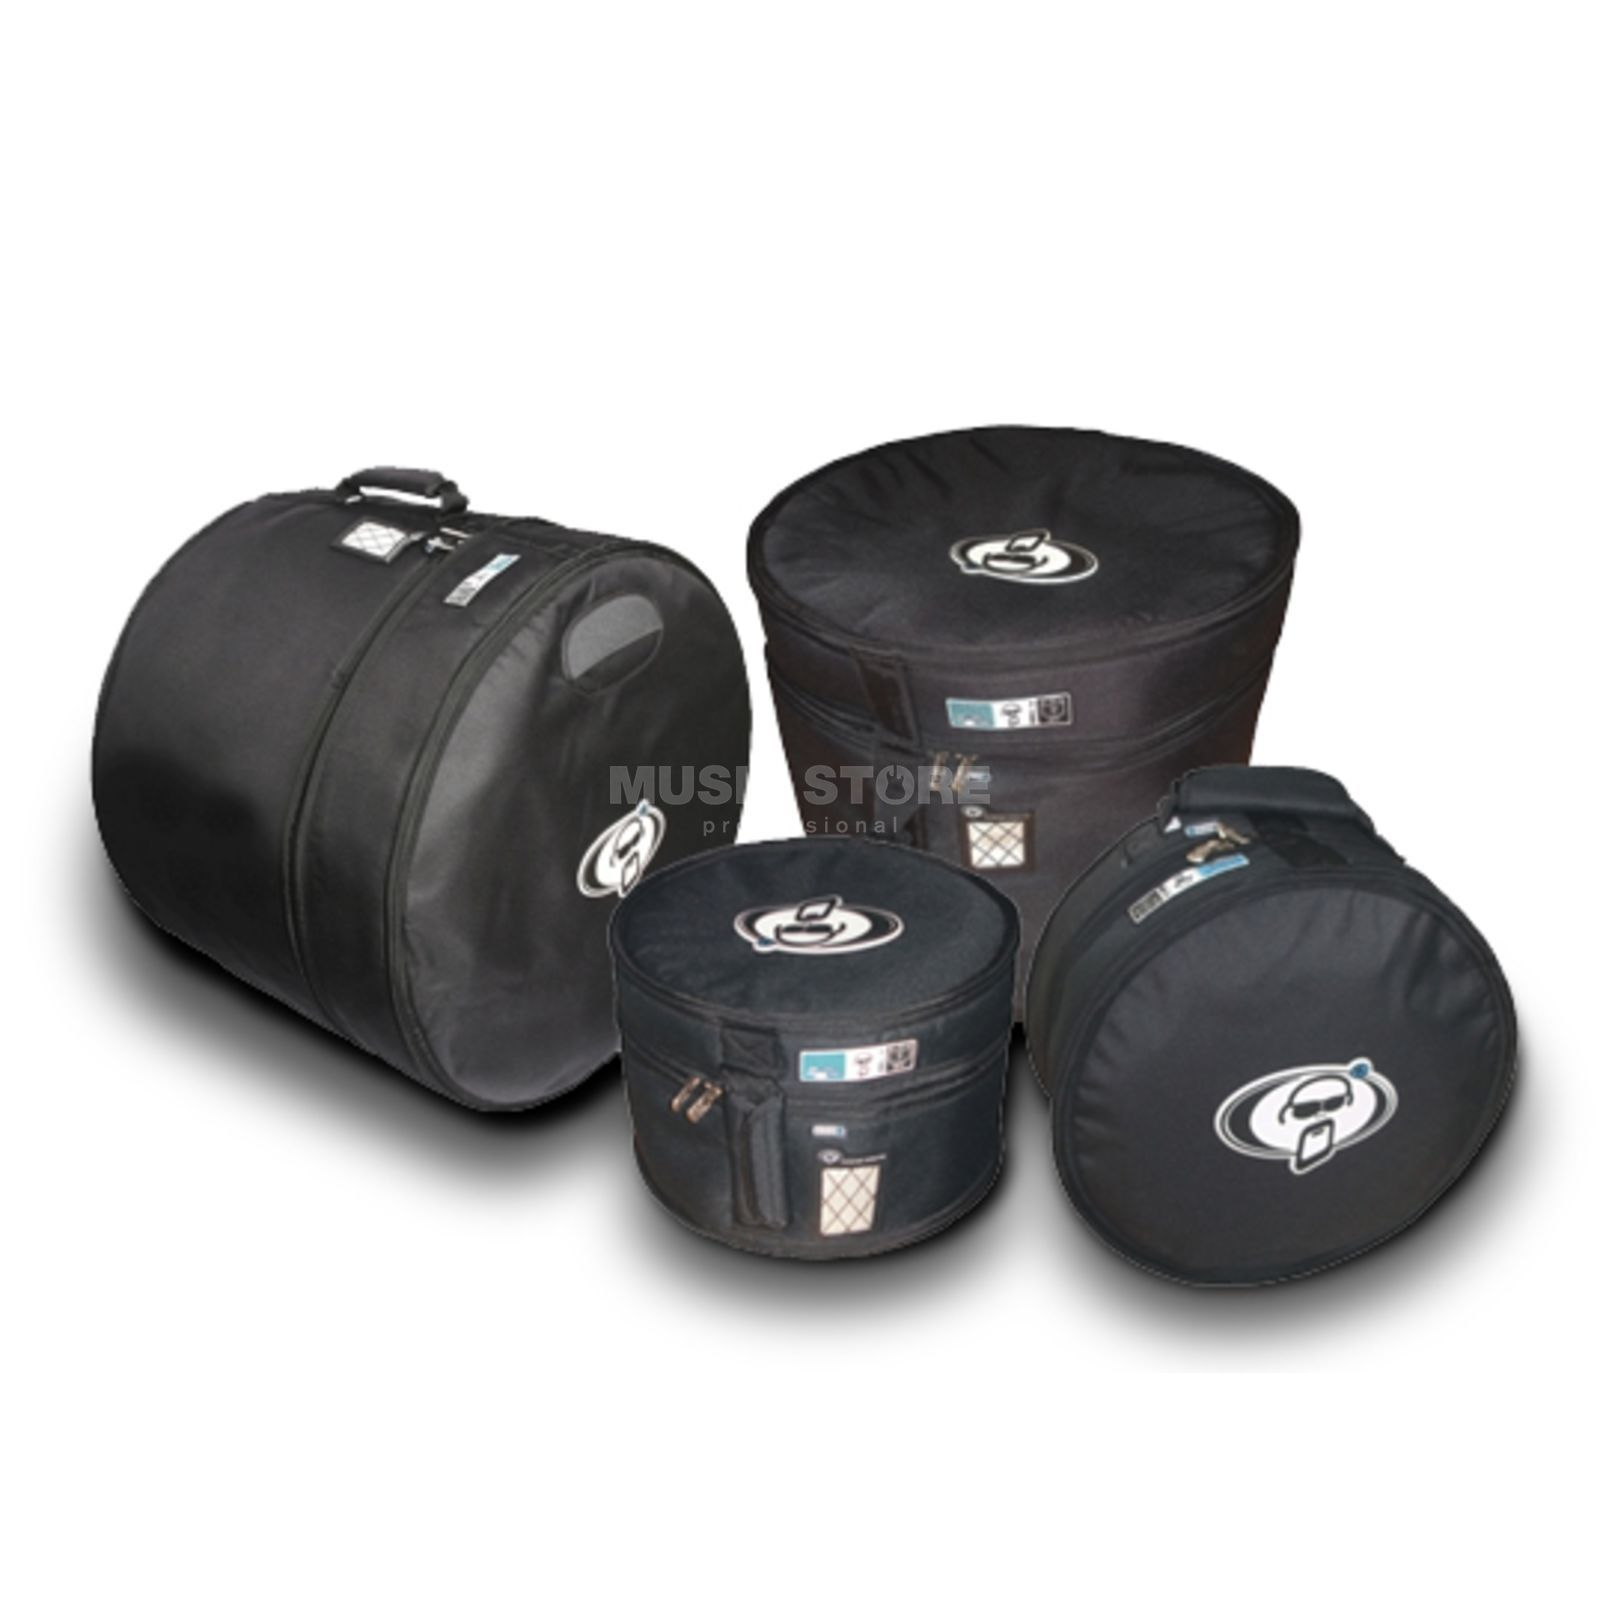 "Protection Racket BagSet SET 7, 18""x14"", 12""x8"", 14""x14"", 14""x5,5"" Produktbillede"